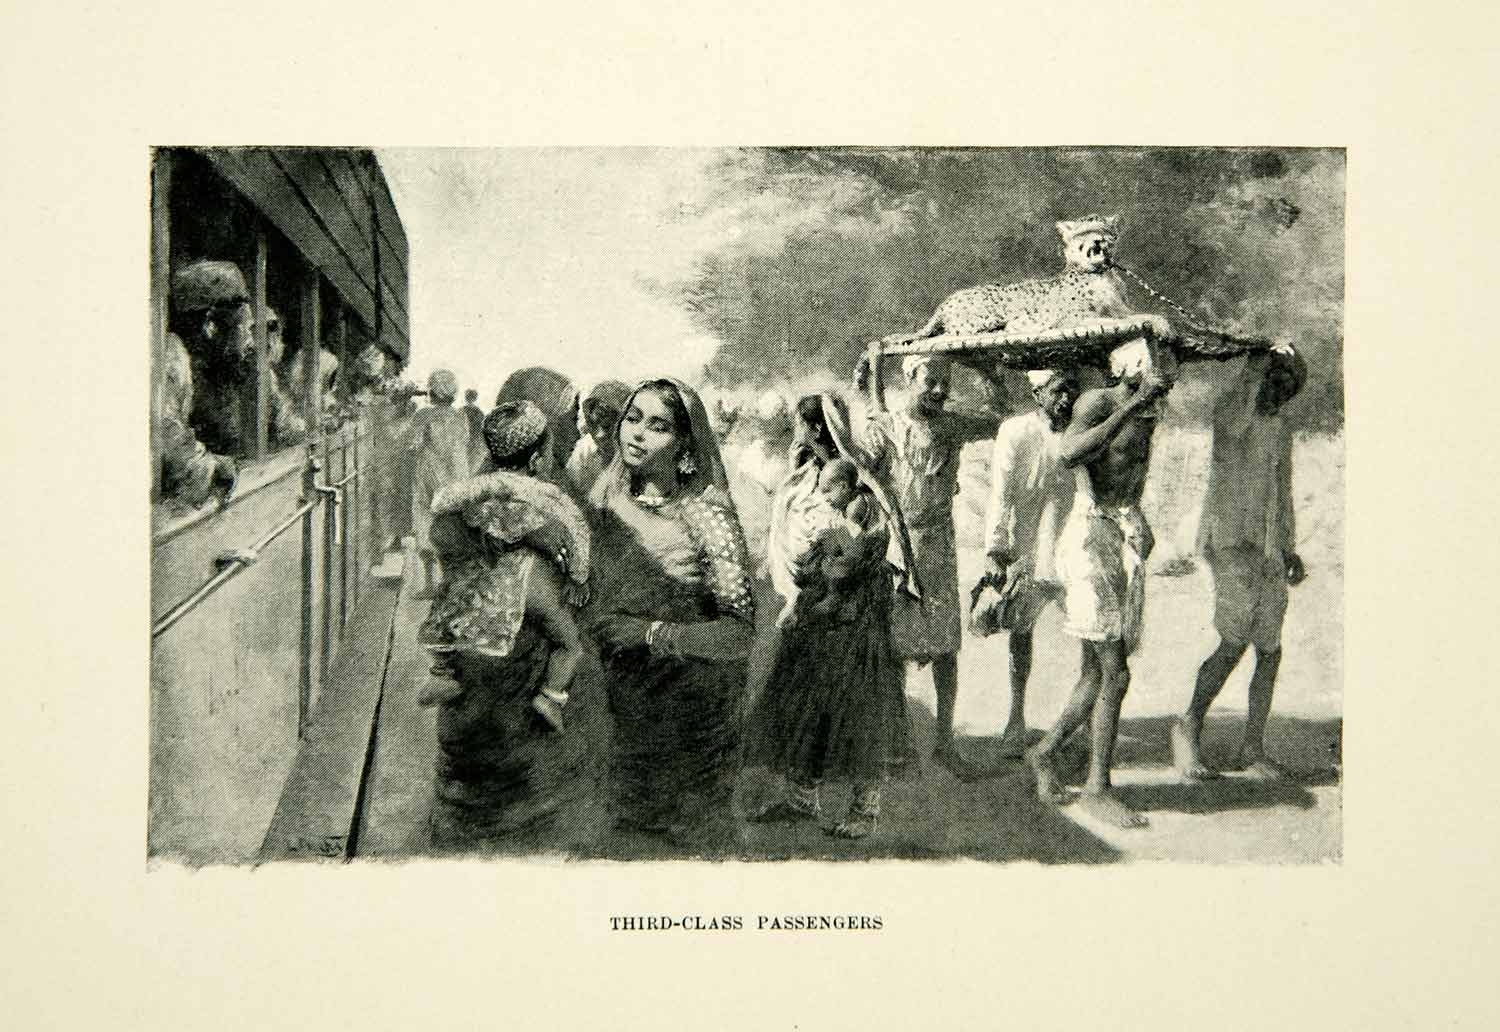 1896 Print Third Class Passengers Railroad Bikanir India Edwin Lord Weeks XGAF9